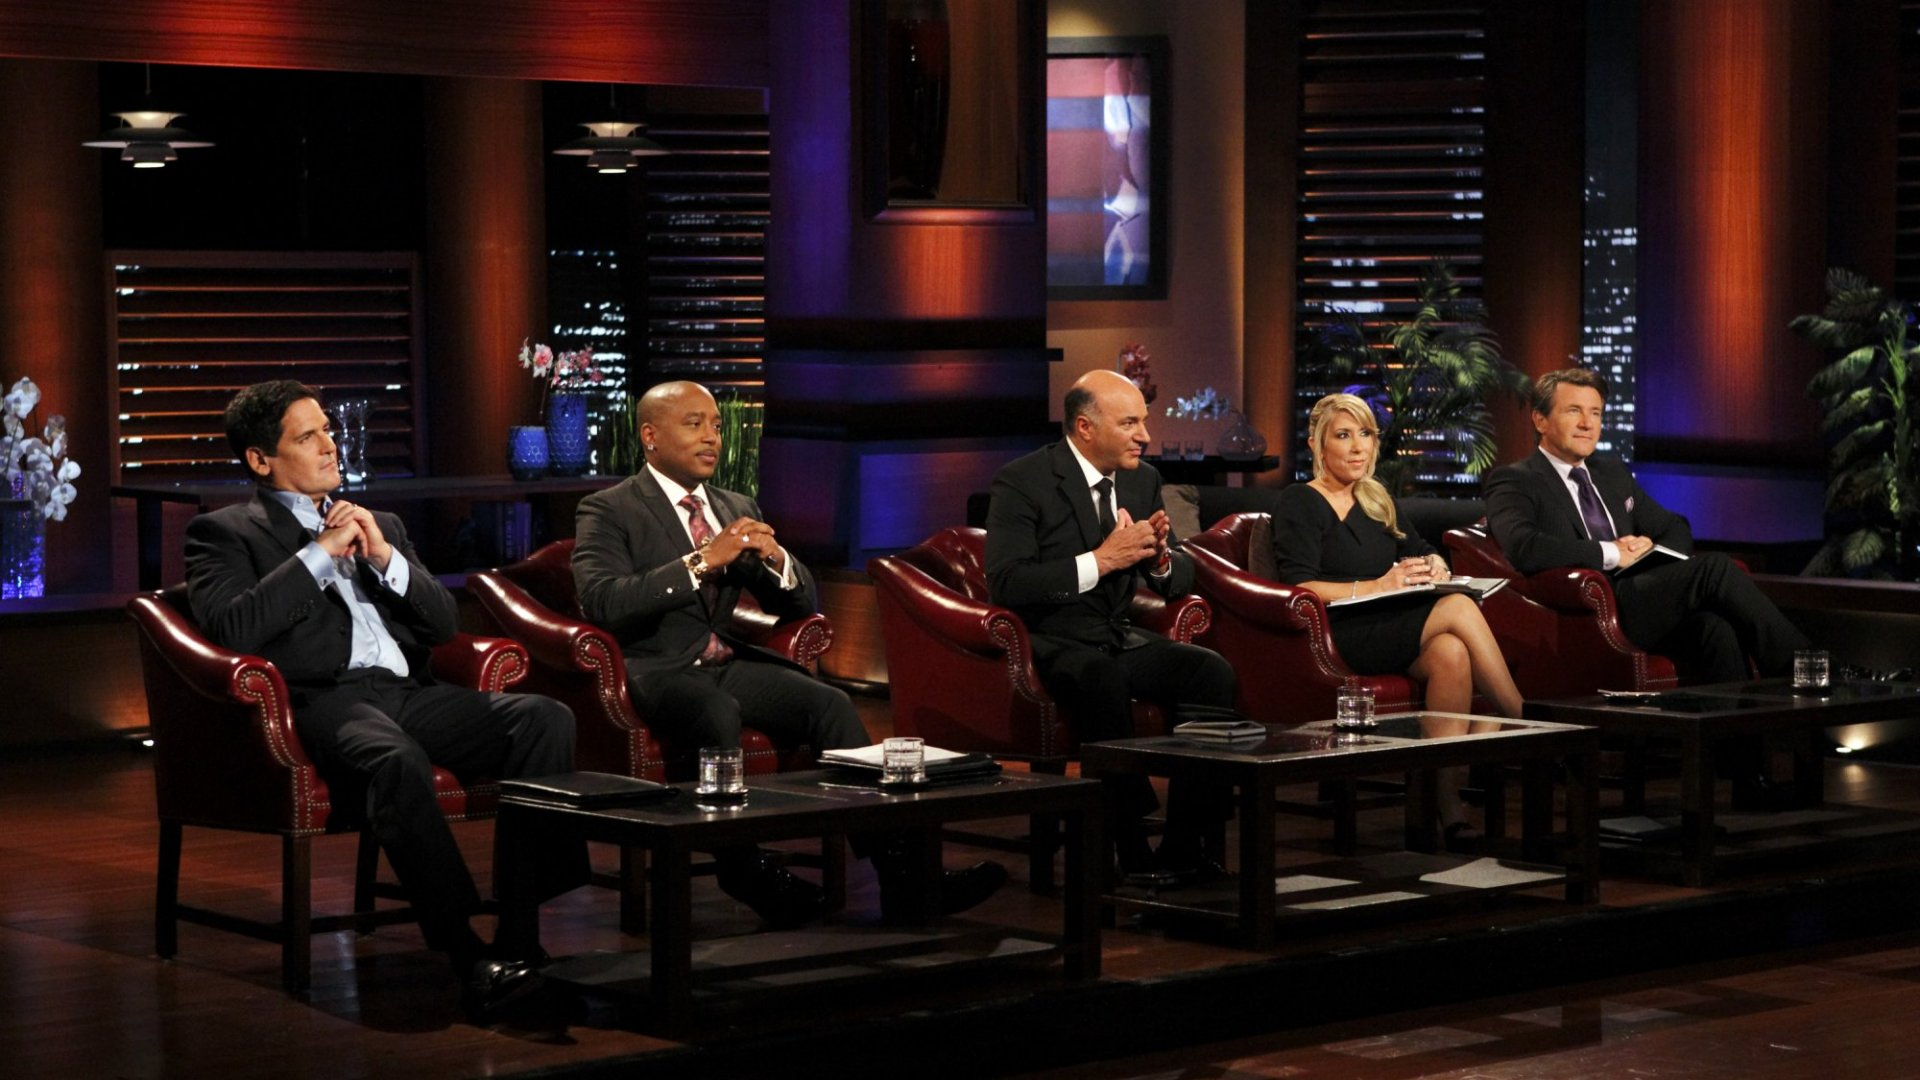 From left: Mark Cuban, Daymond John, Kevin O'Leary, Lori Greiner, and Robert Herjavec.